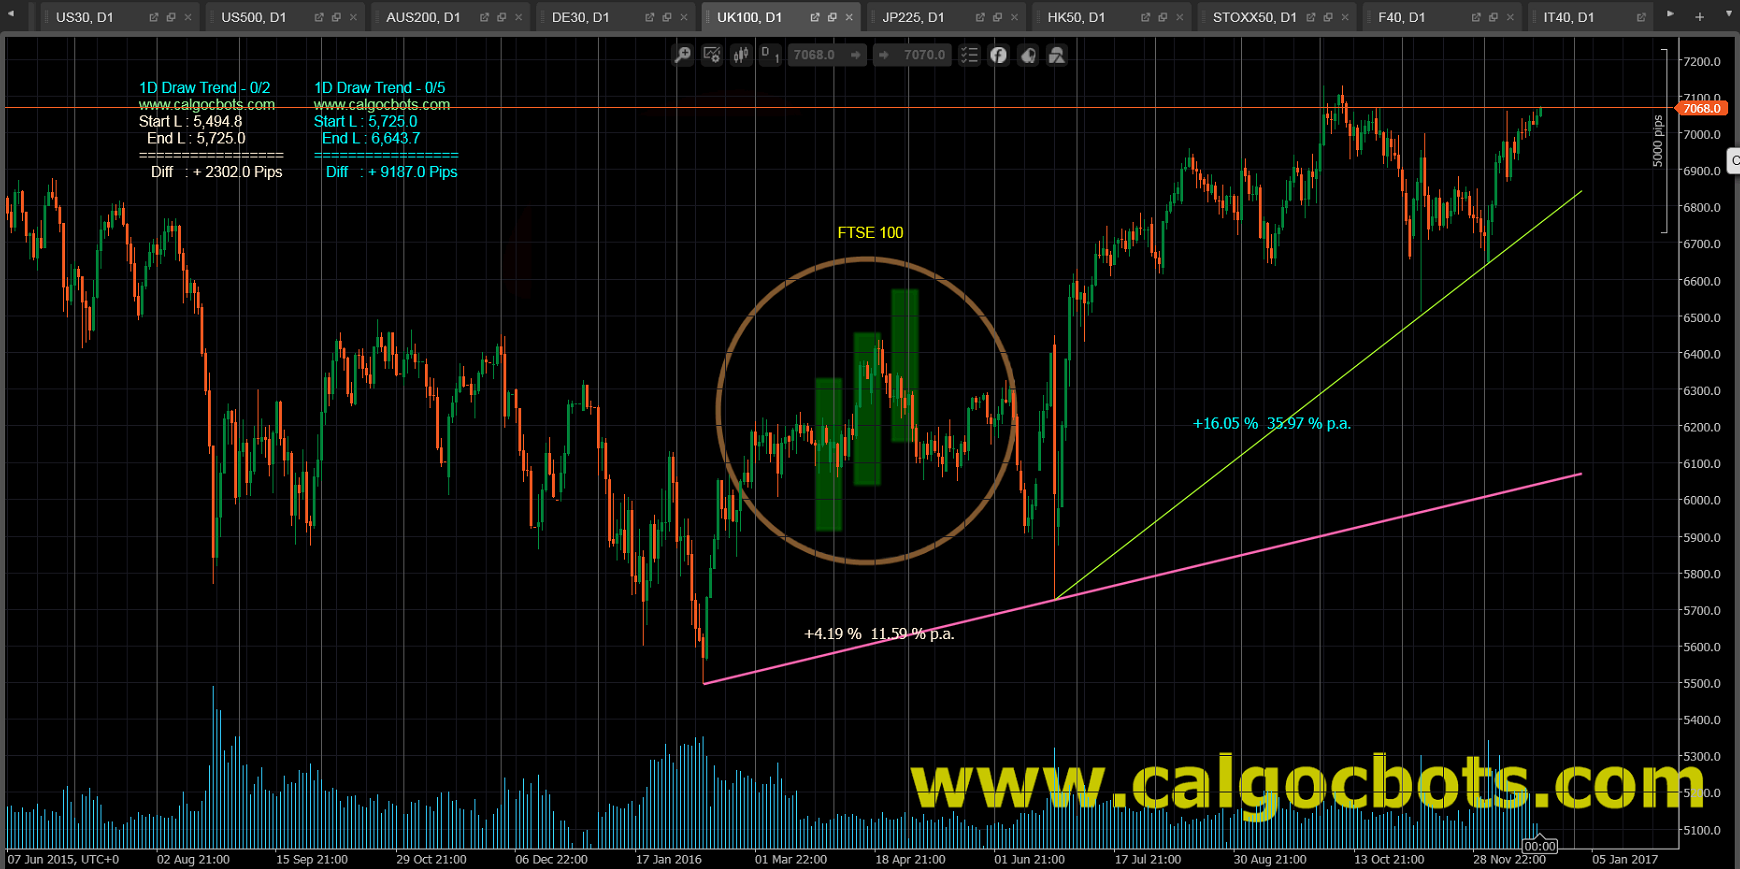 1D Draw Trend - cAlgo and cTrader Indicator - UK 100 Index FTSE 100 Daily Chart - 003